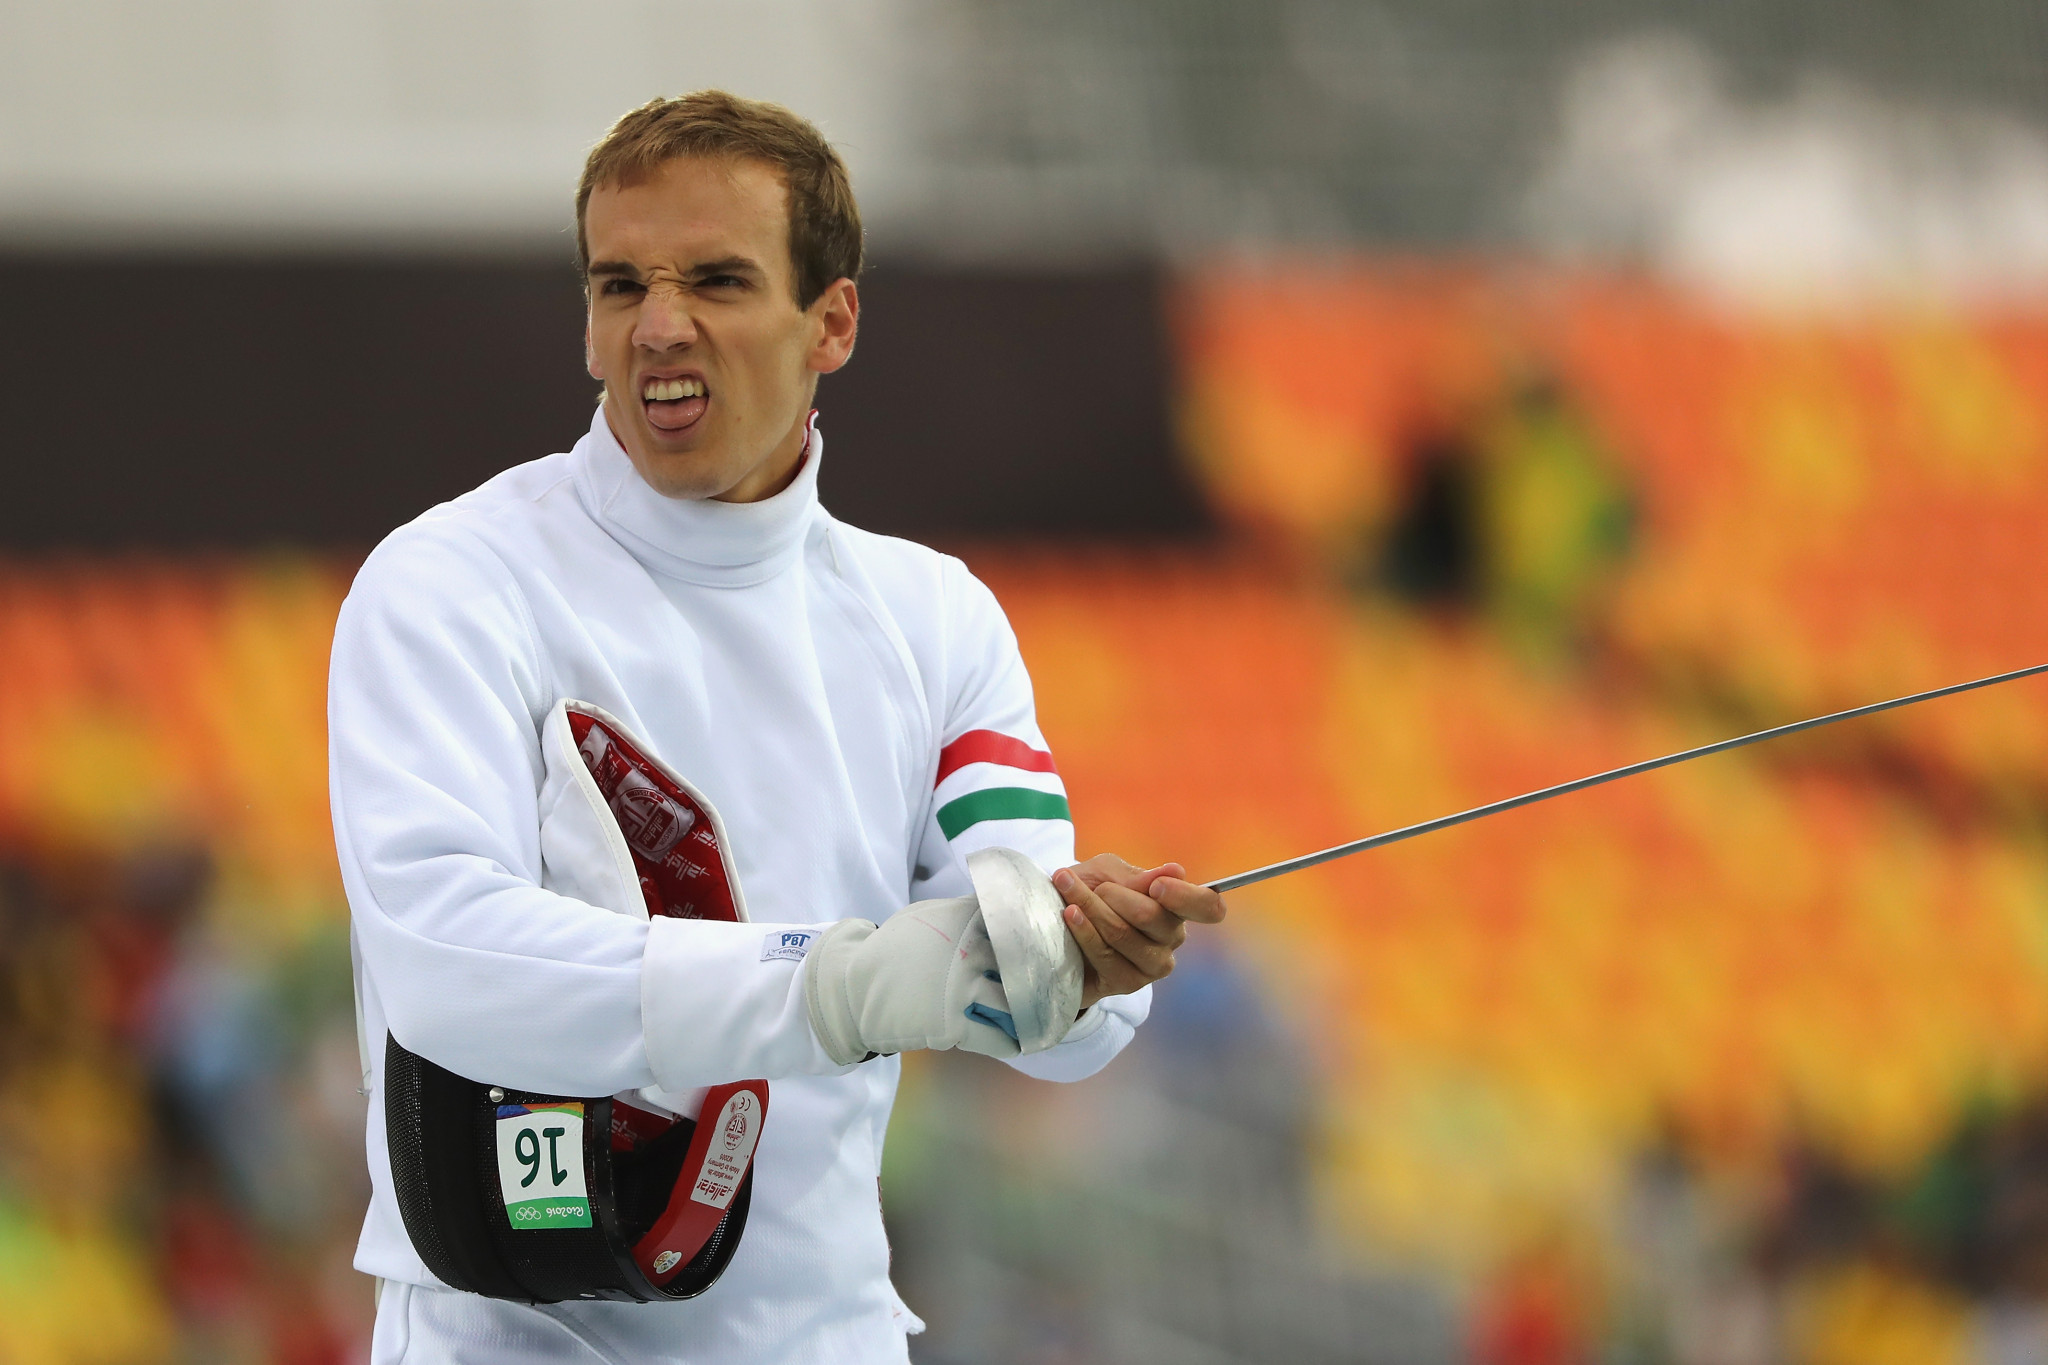 Hungarian tops men's qualification standings at UIPM World Cup